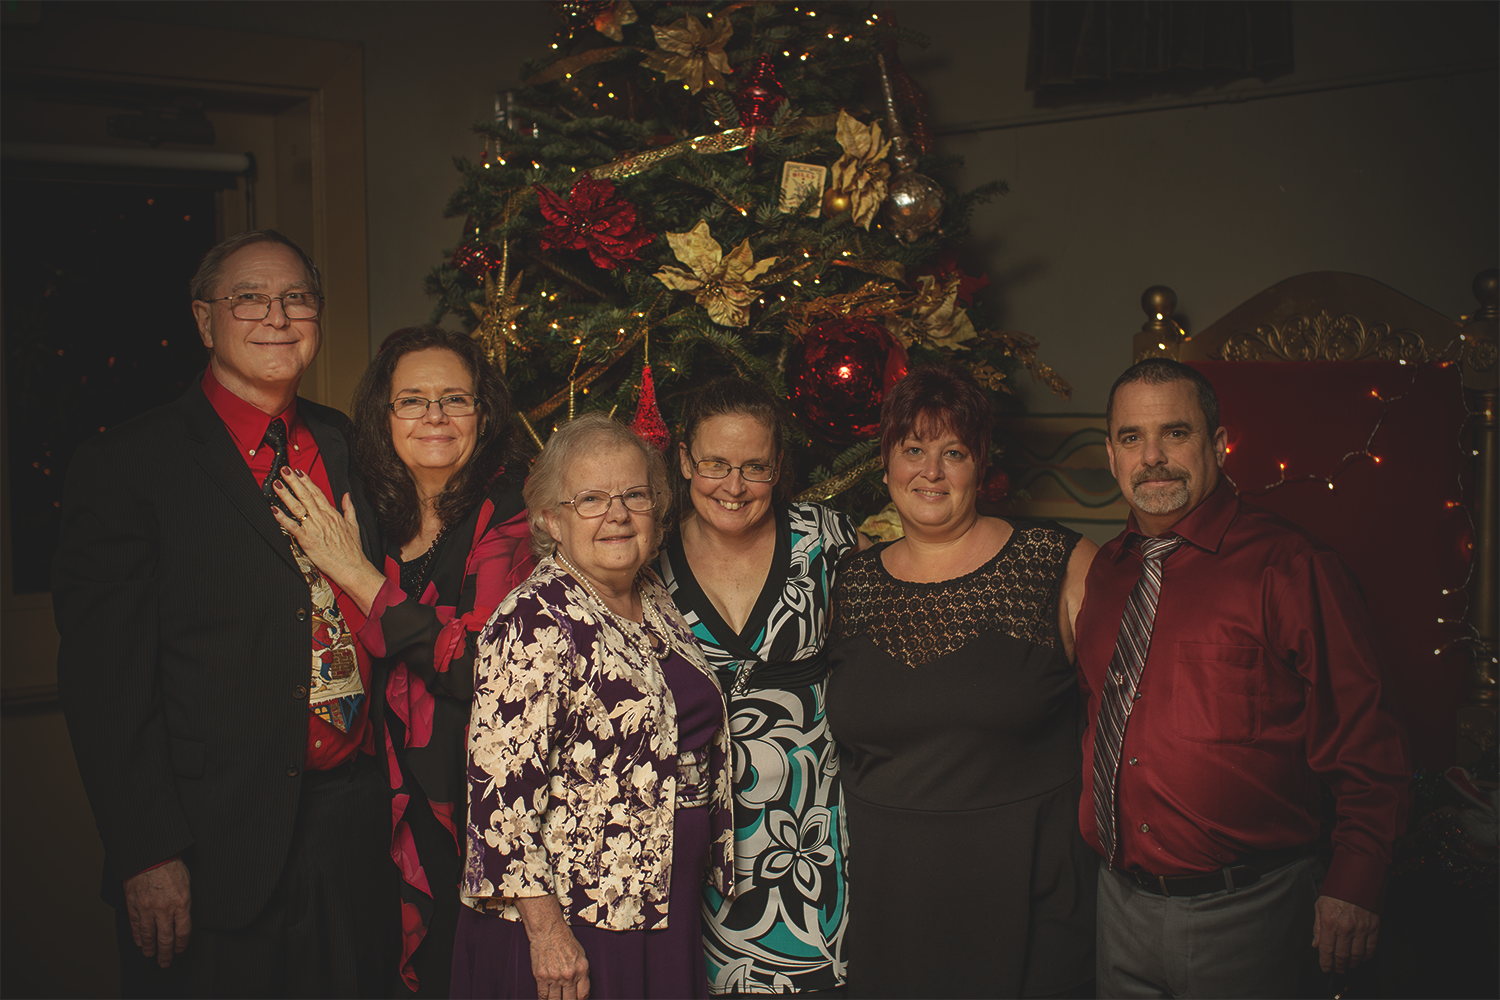 epproperties-vancouver-washington-xmas-party-photolga21.png